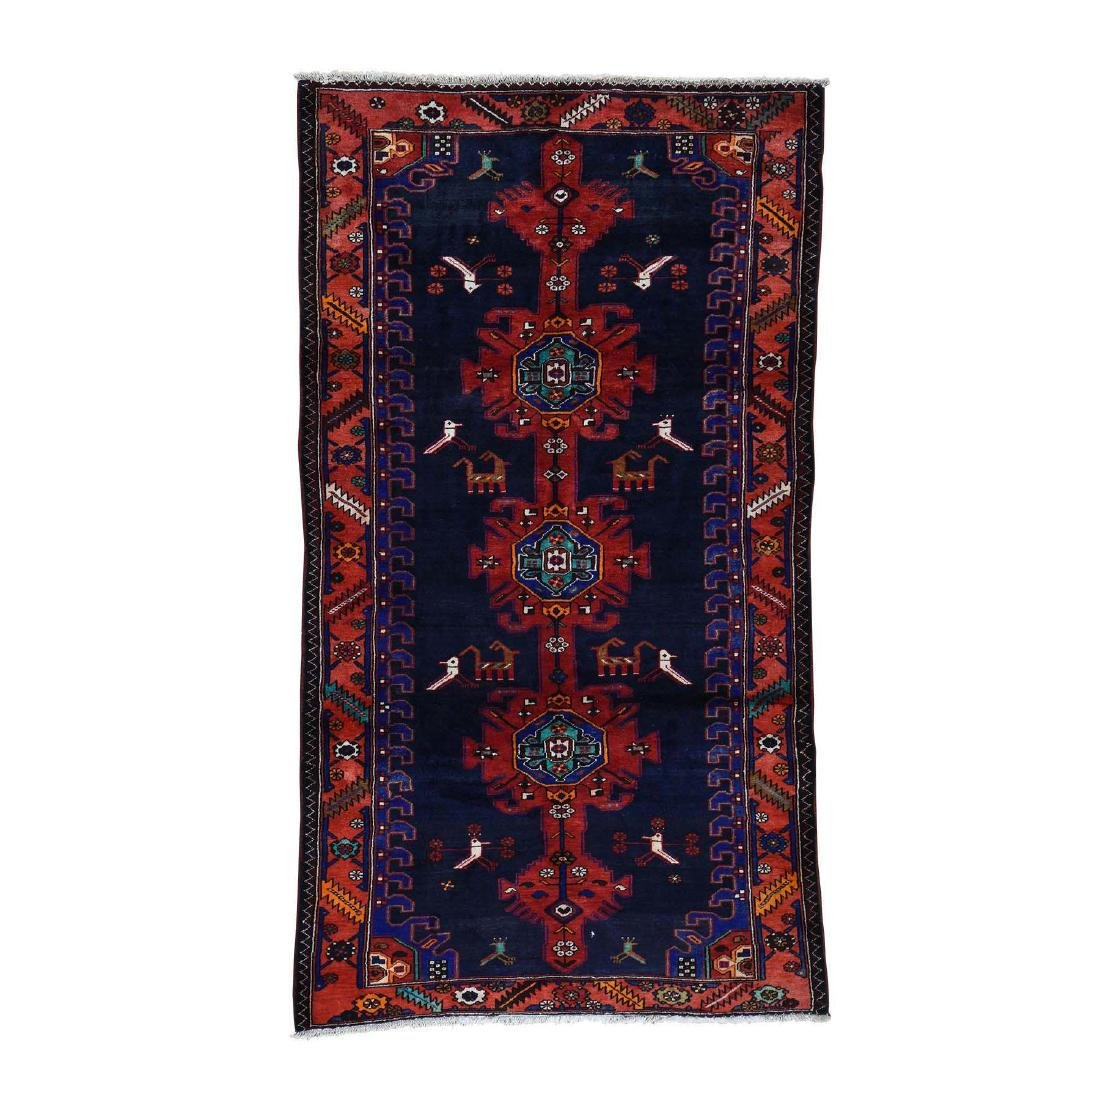 Hand Knotted Semi Antique Persian Hamadan Rug 5.1x9